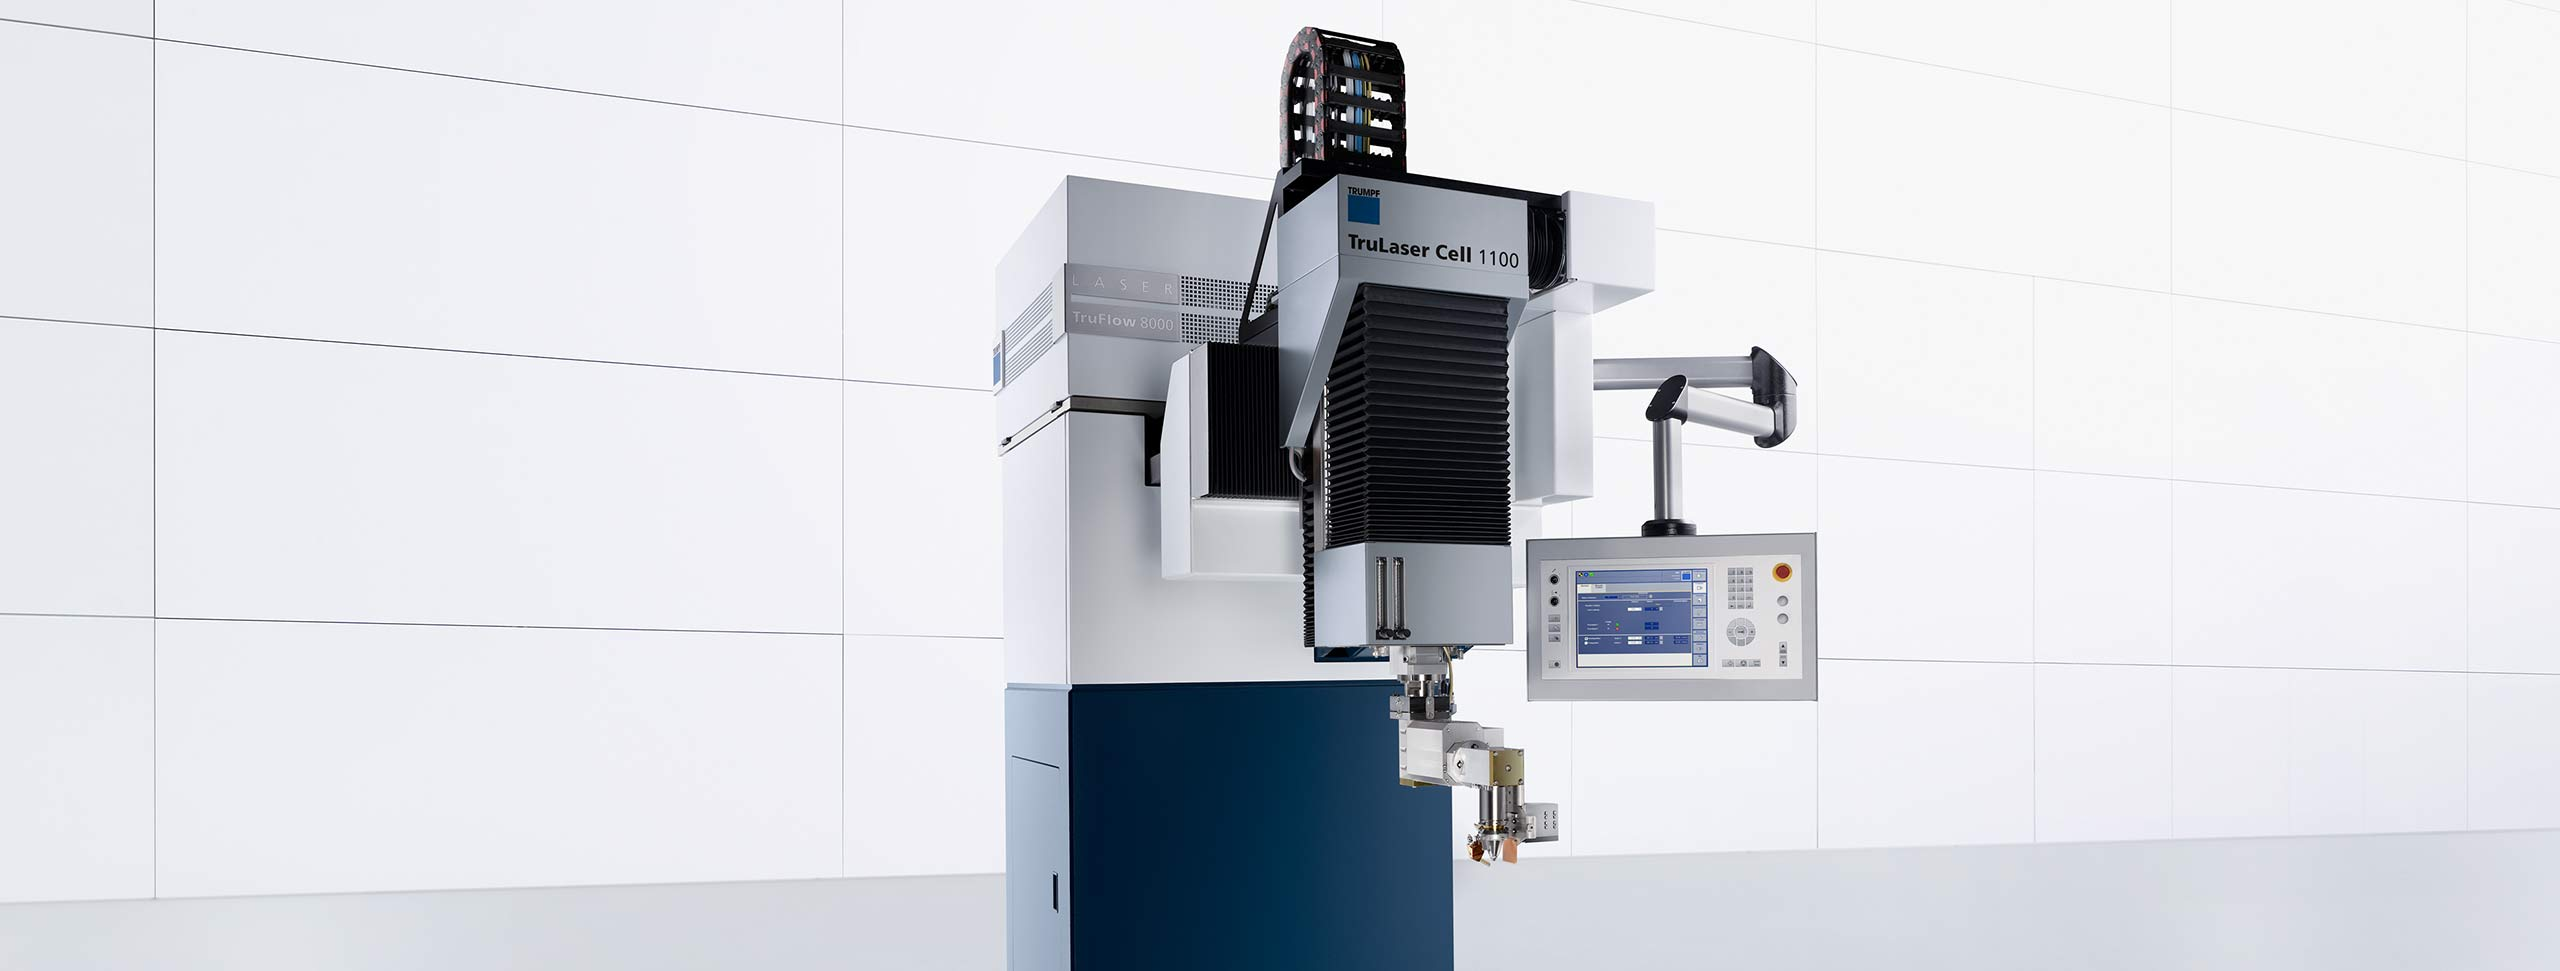 TruLaser Cell Series 1100